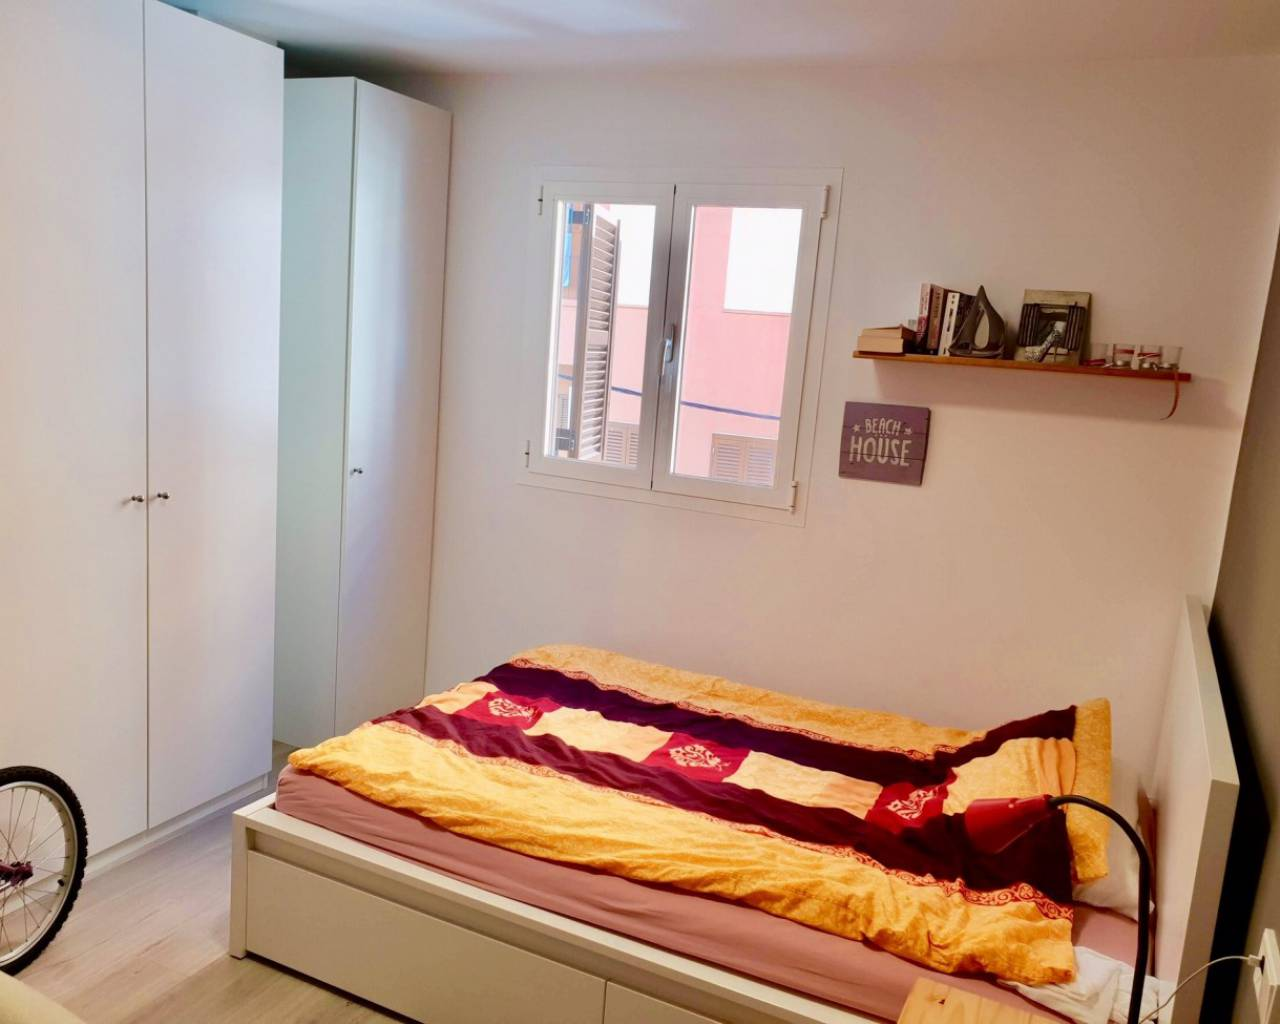 For Rent - Apartment - Palma de Mallorca - Palma De Mallorca